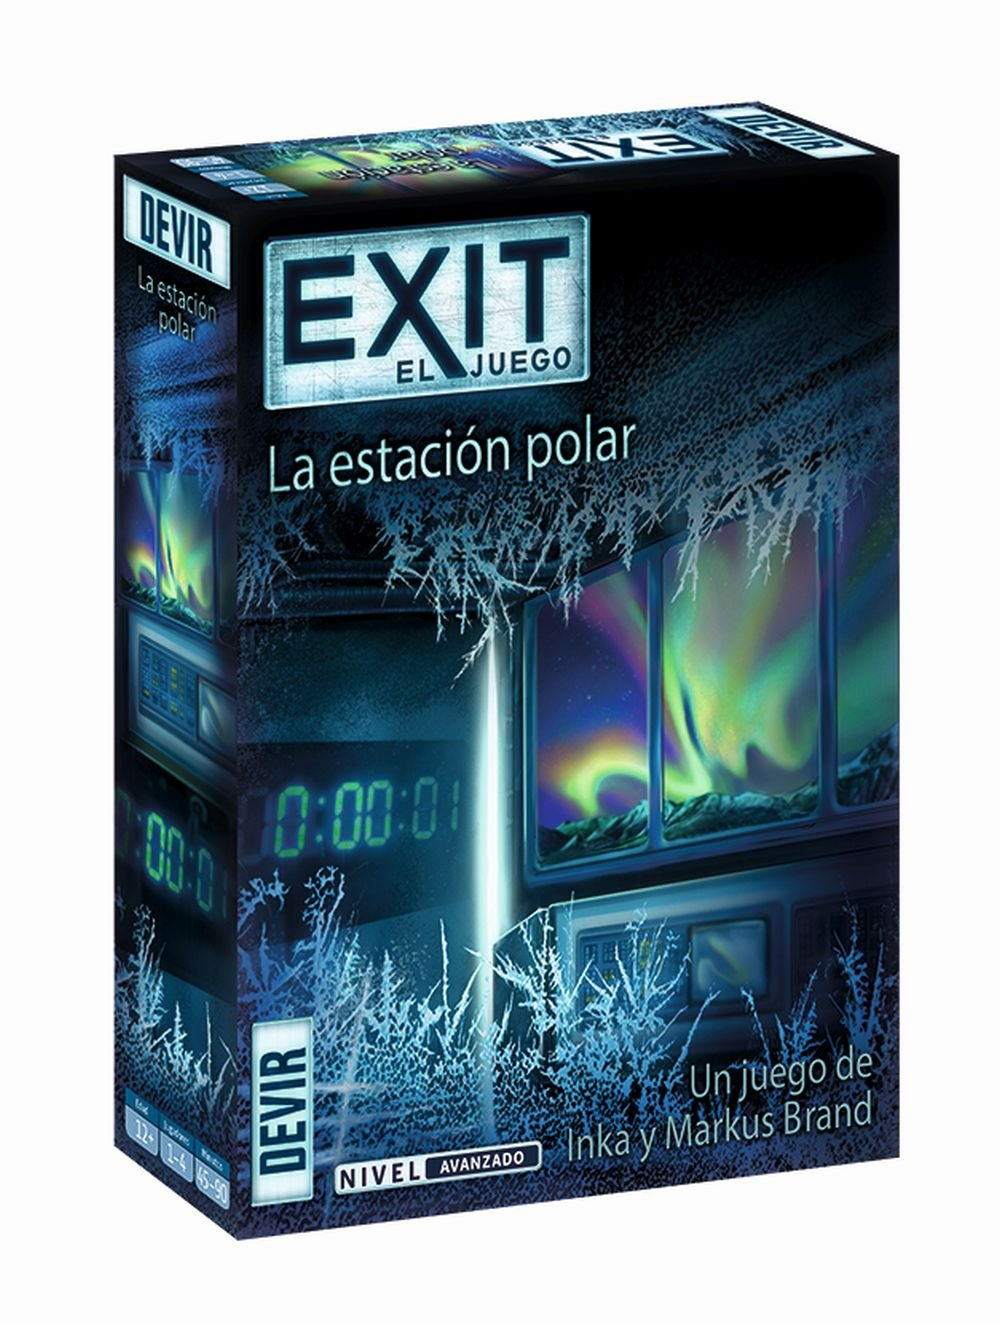 Devir – Exit 6: The Station Polar (Ed. In Spanish, Multi-Colour (Various)